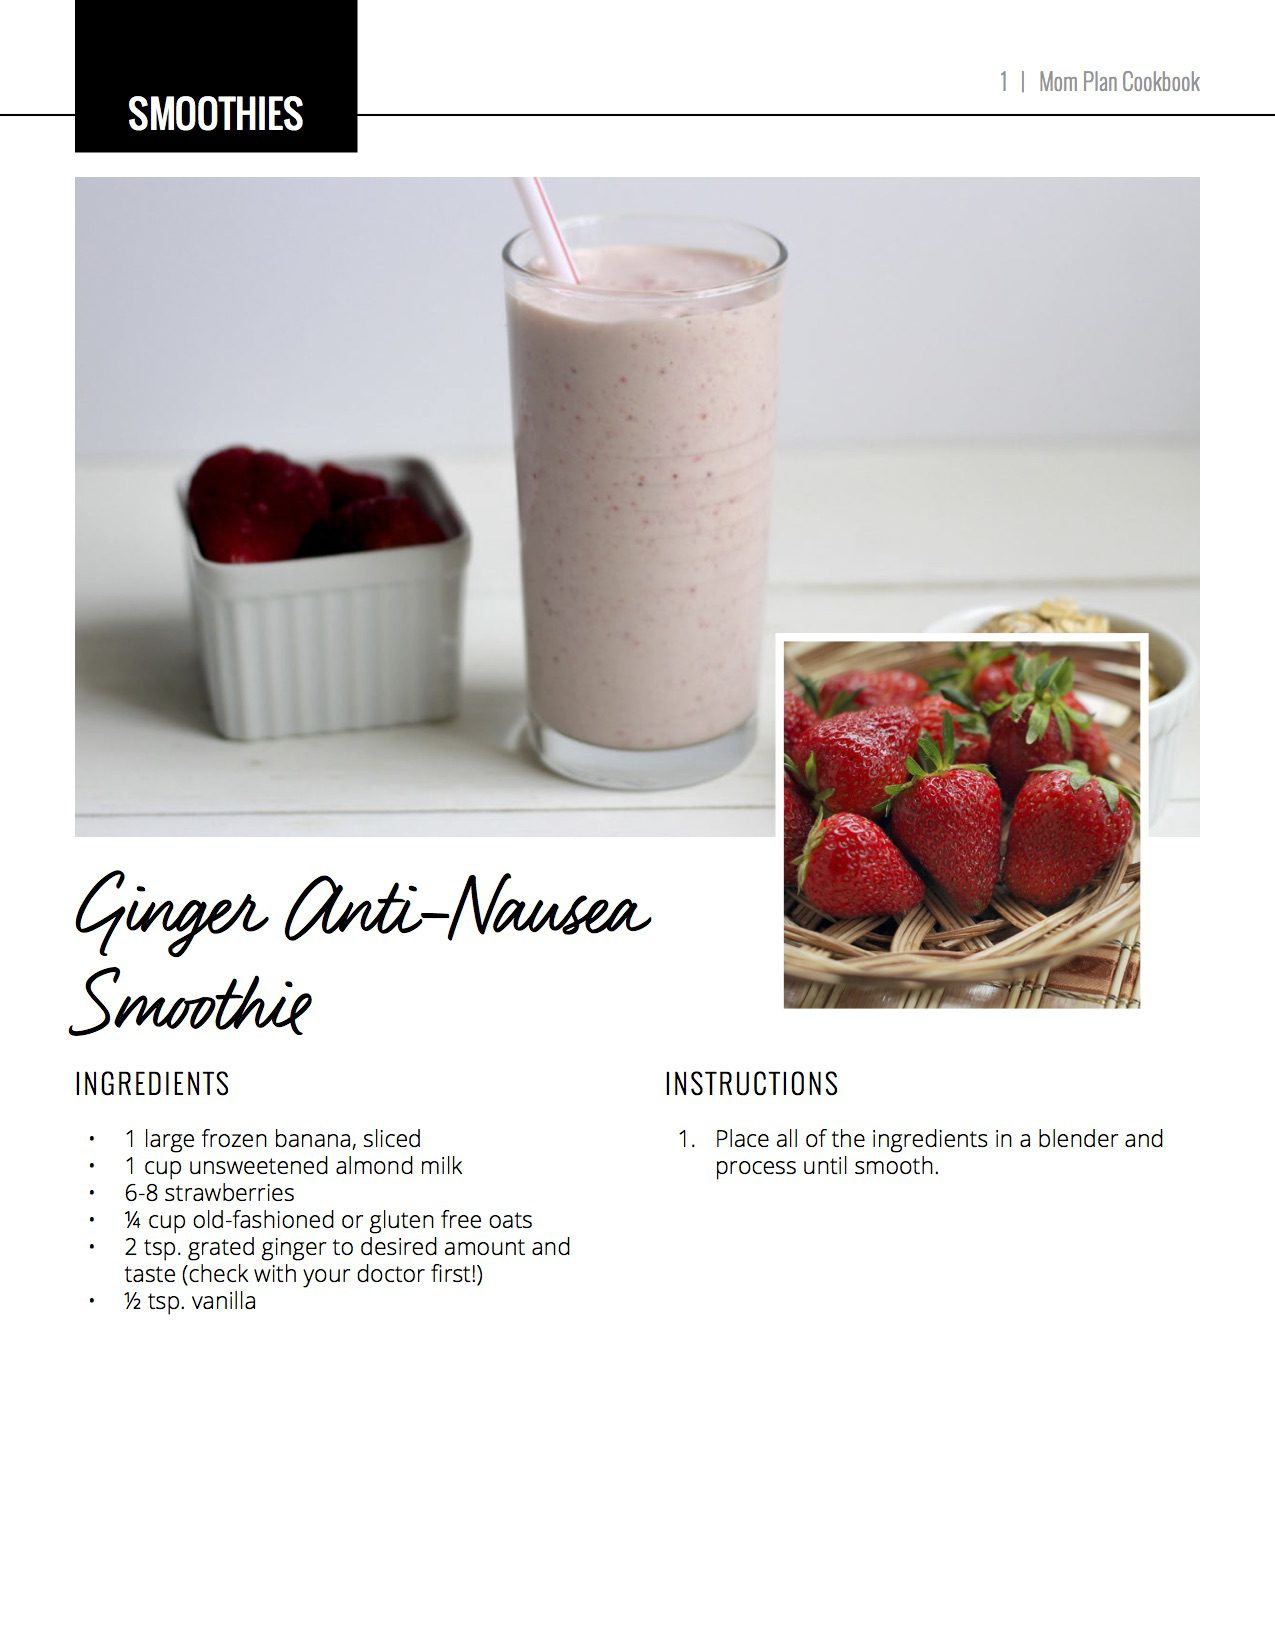 ginger anti-nausea smoothie prenatal